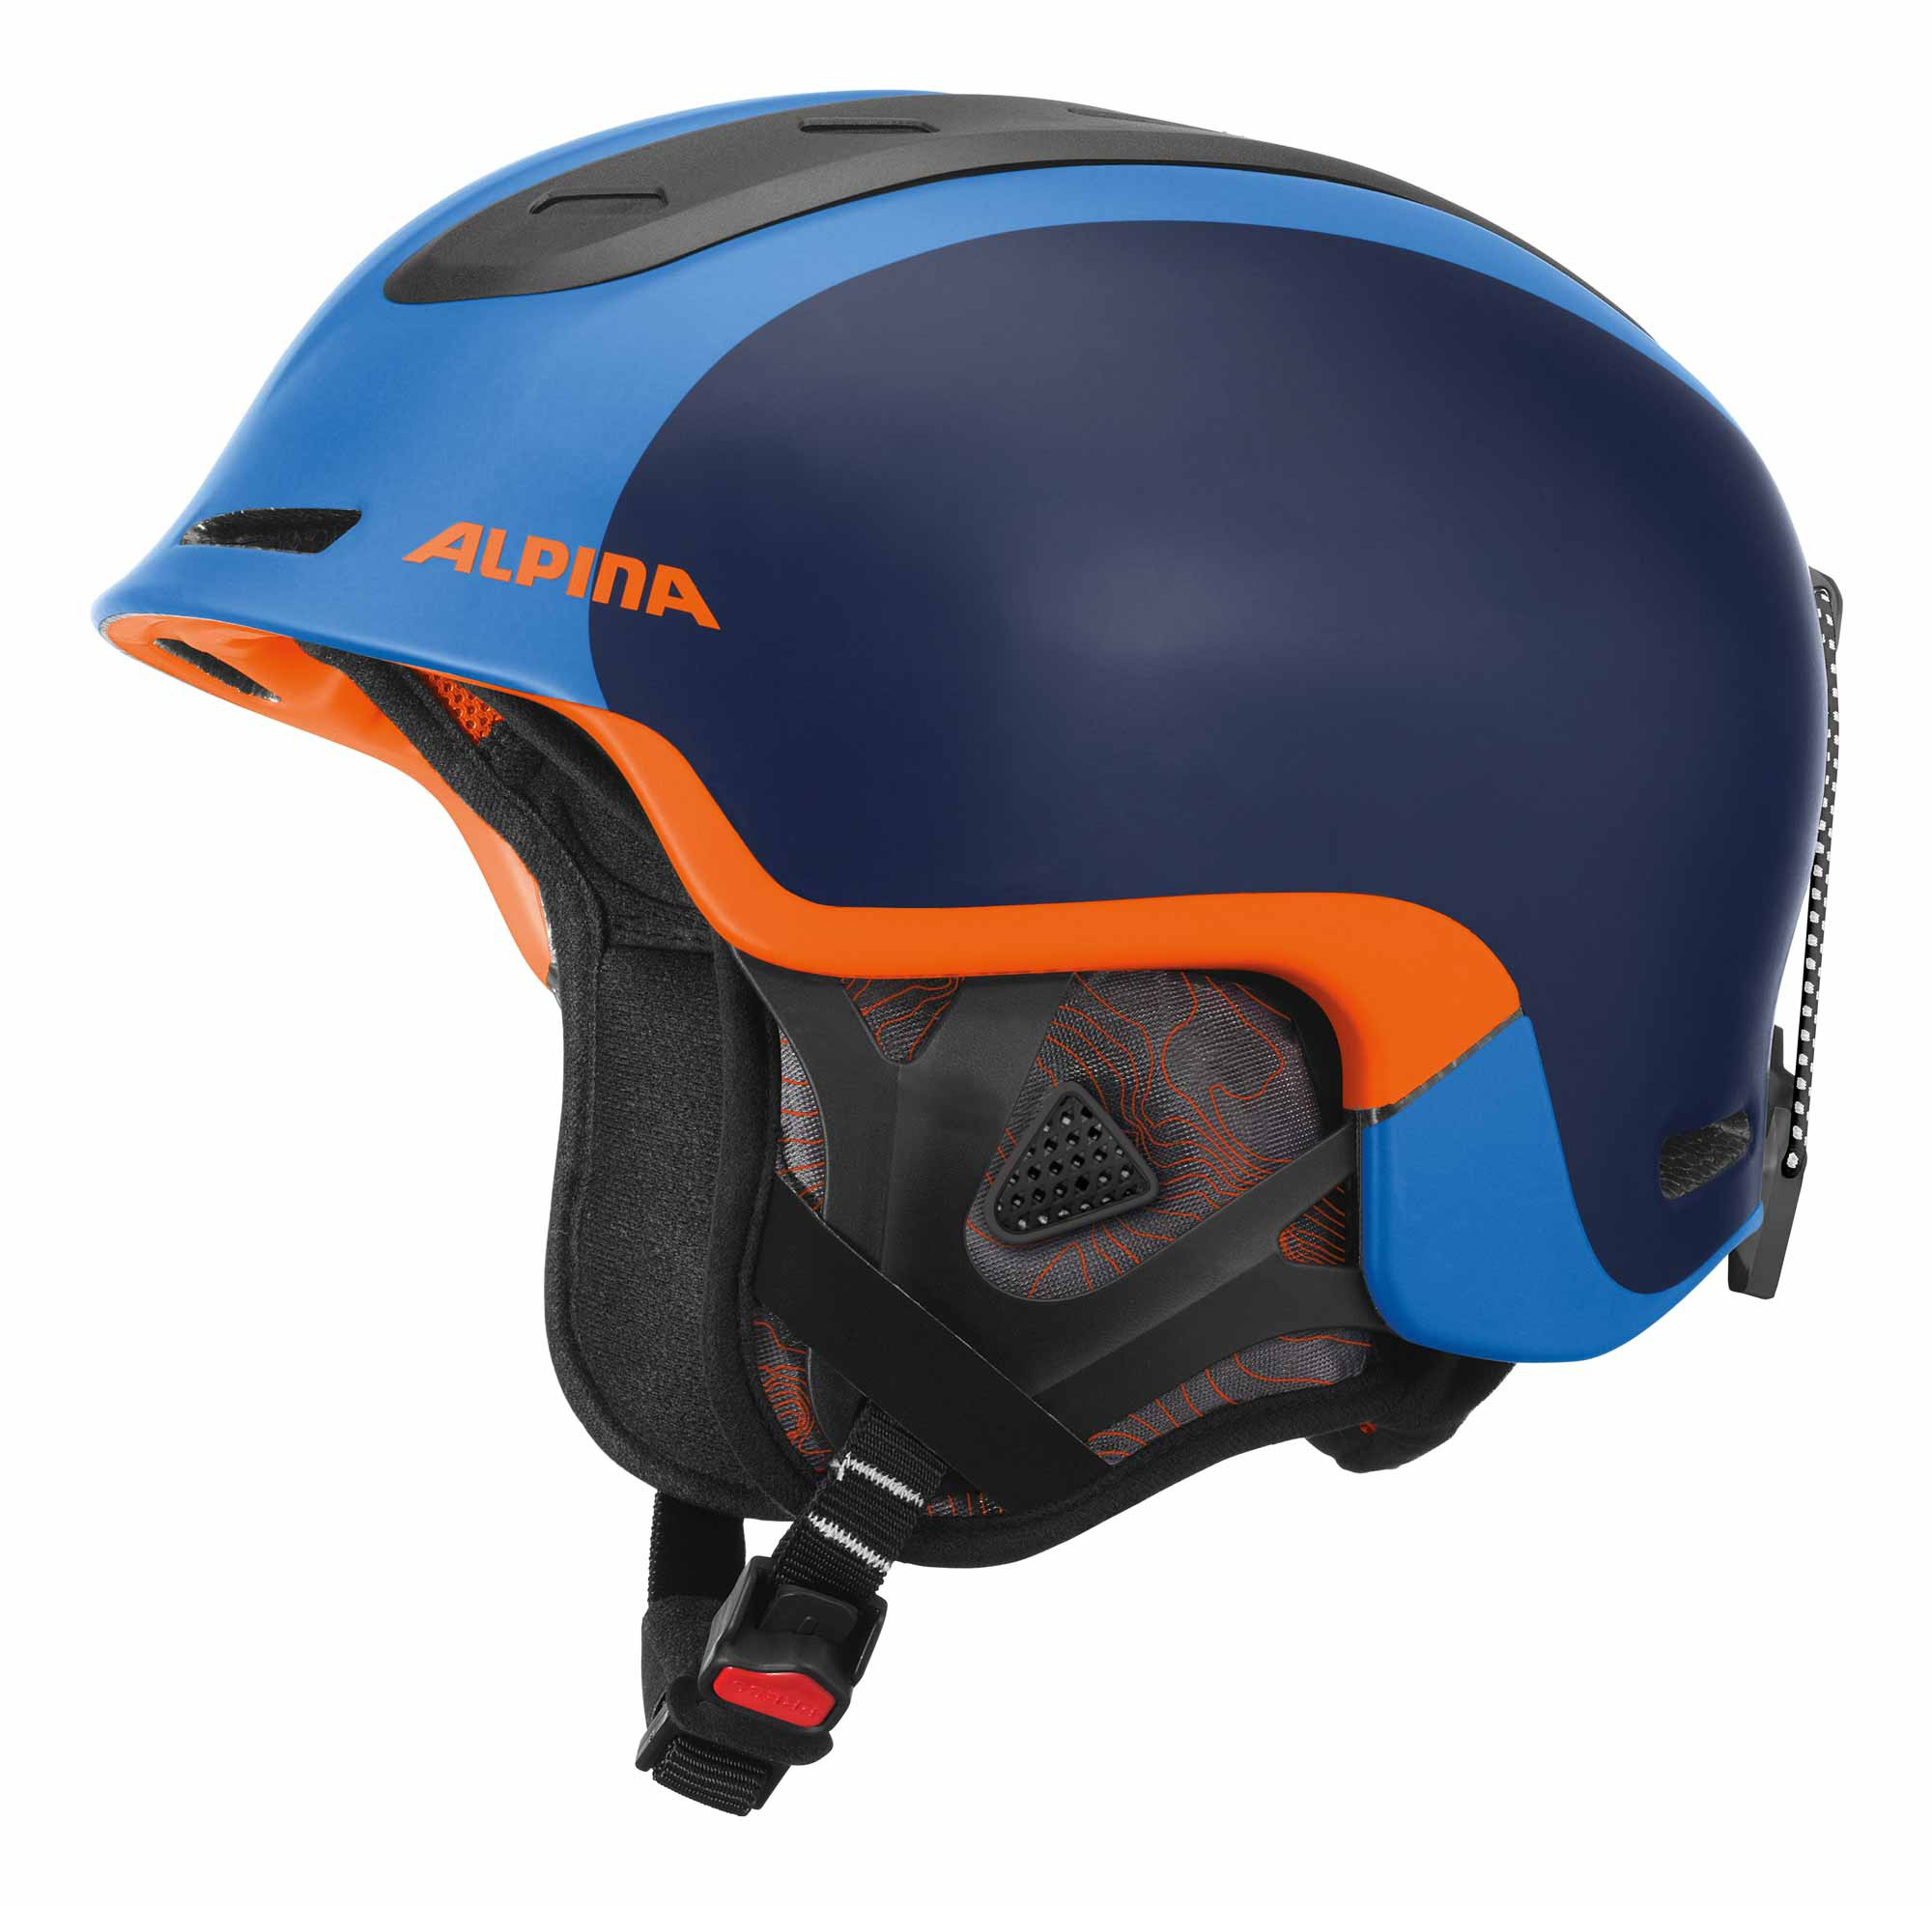 Alpina Spine - Freeride Skihelm - blau orange matt - Gr. 55-59